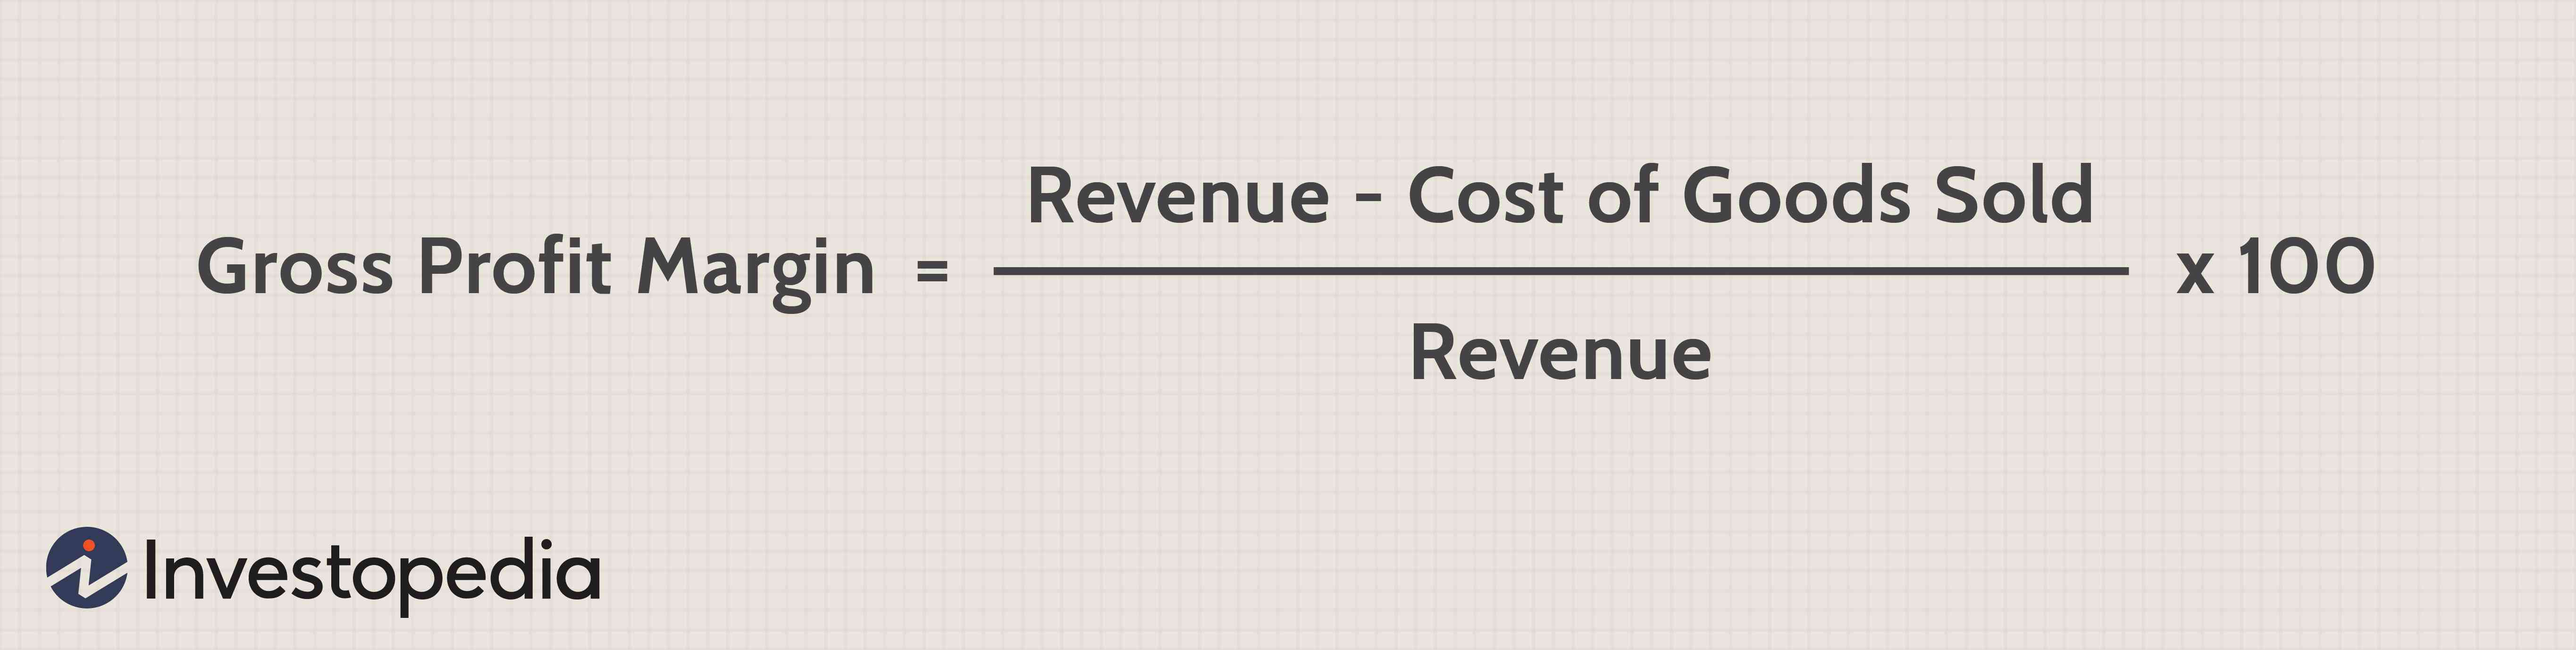 lifetime value formula - What Costs Are Not Counted in Gross Profit Margin?